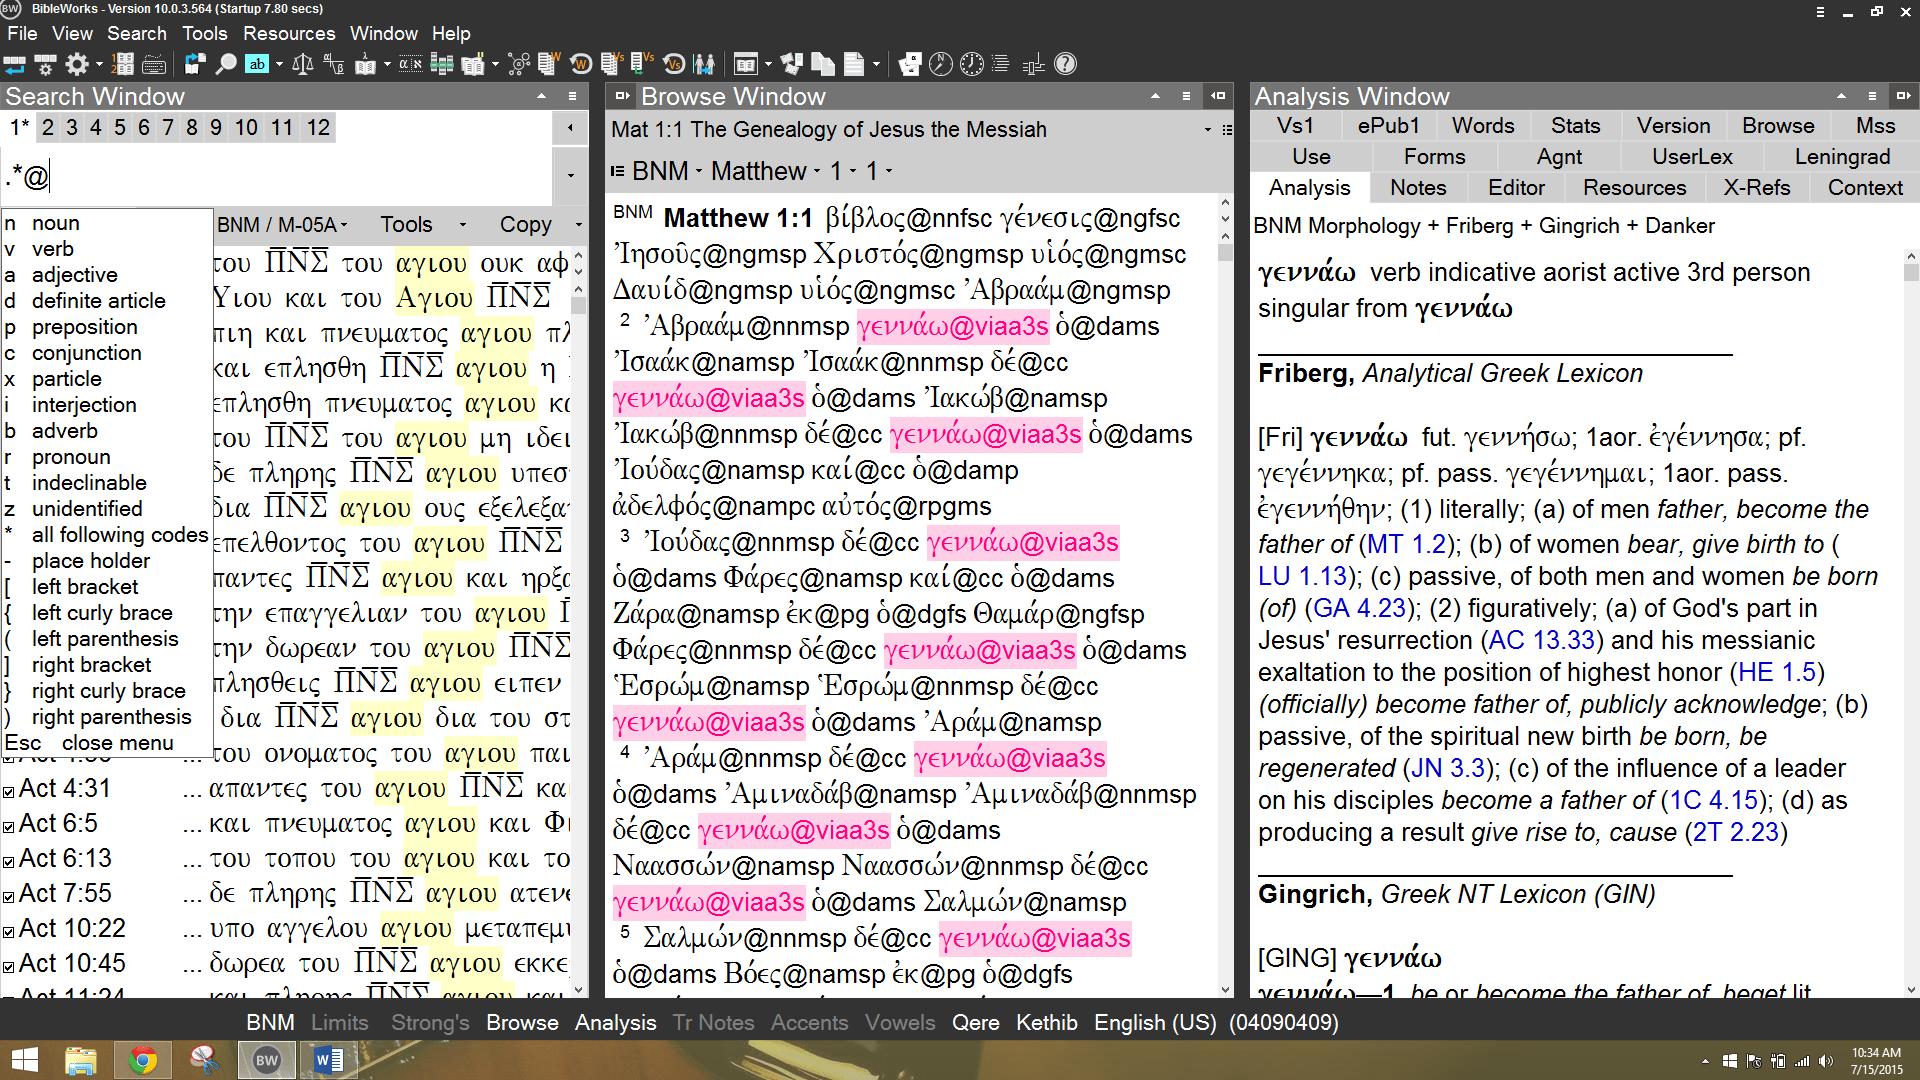 BibleWorks 10 Review Part 2 – A look at the Browse Window - Bible